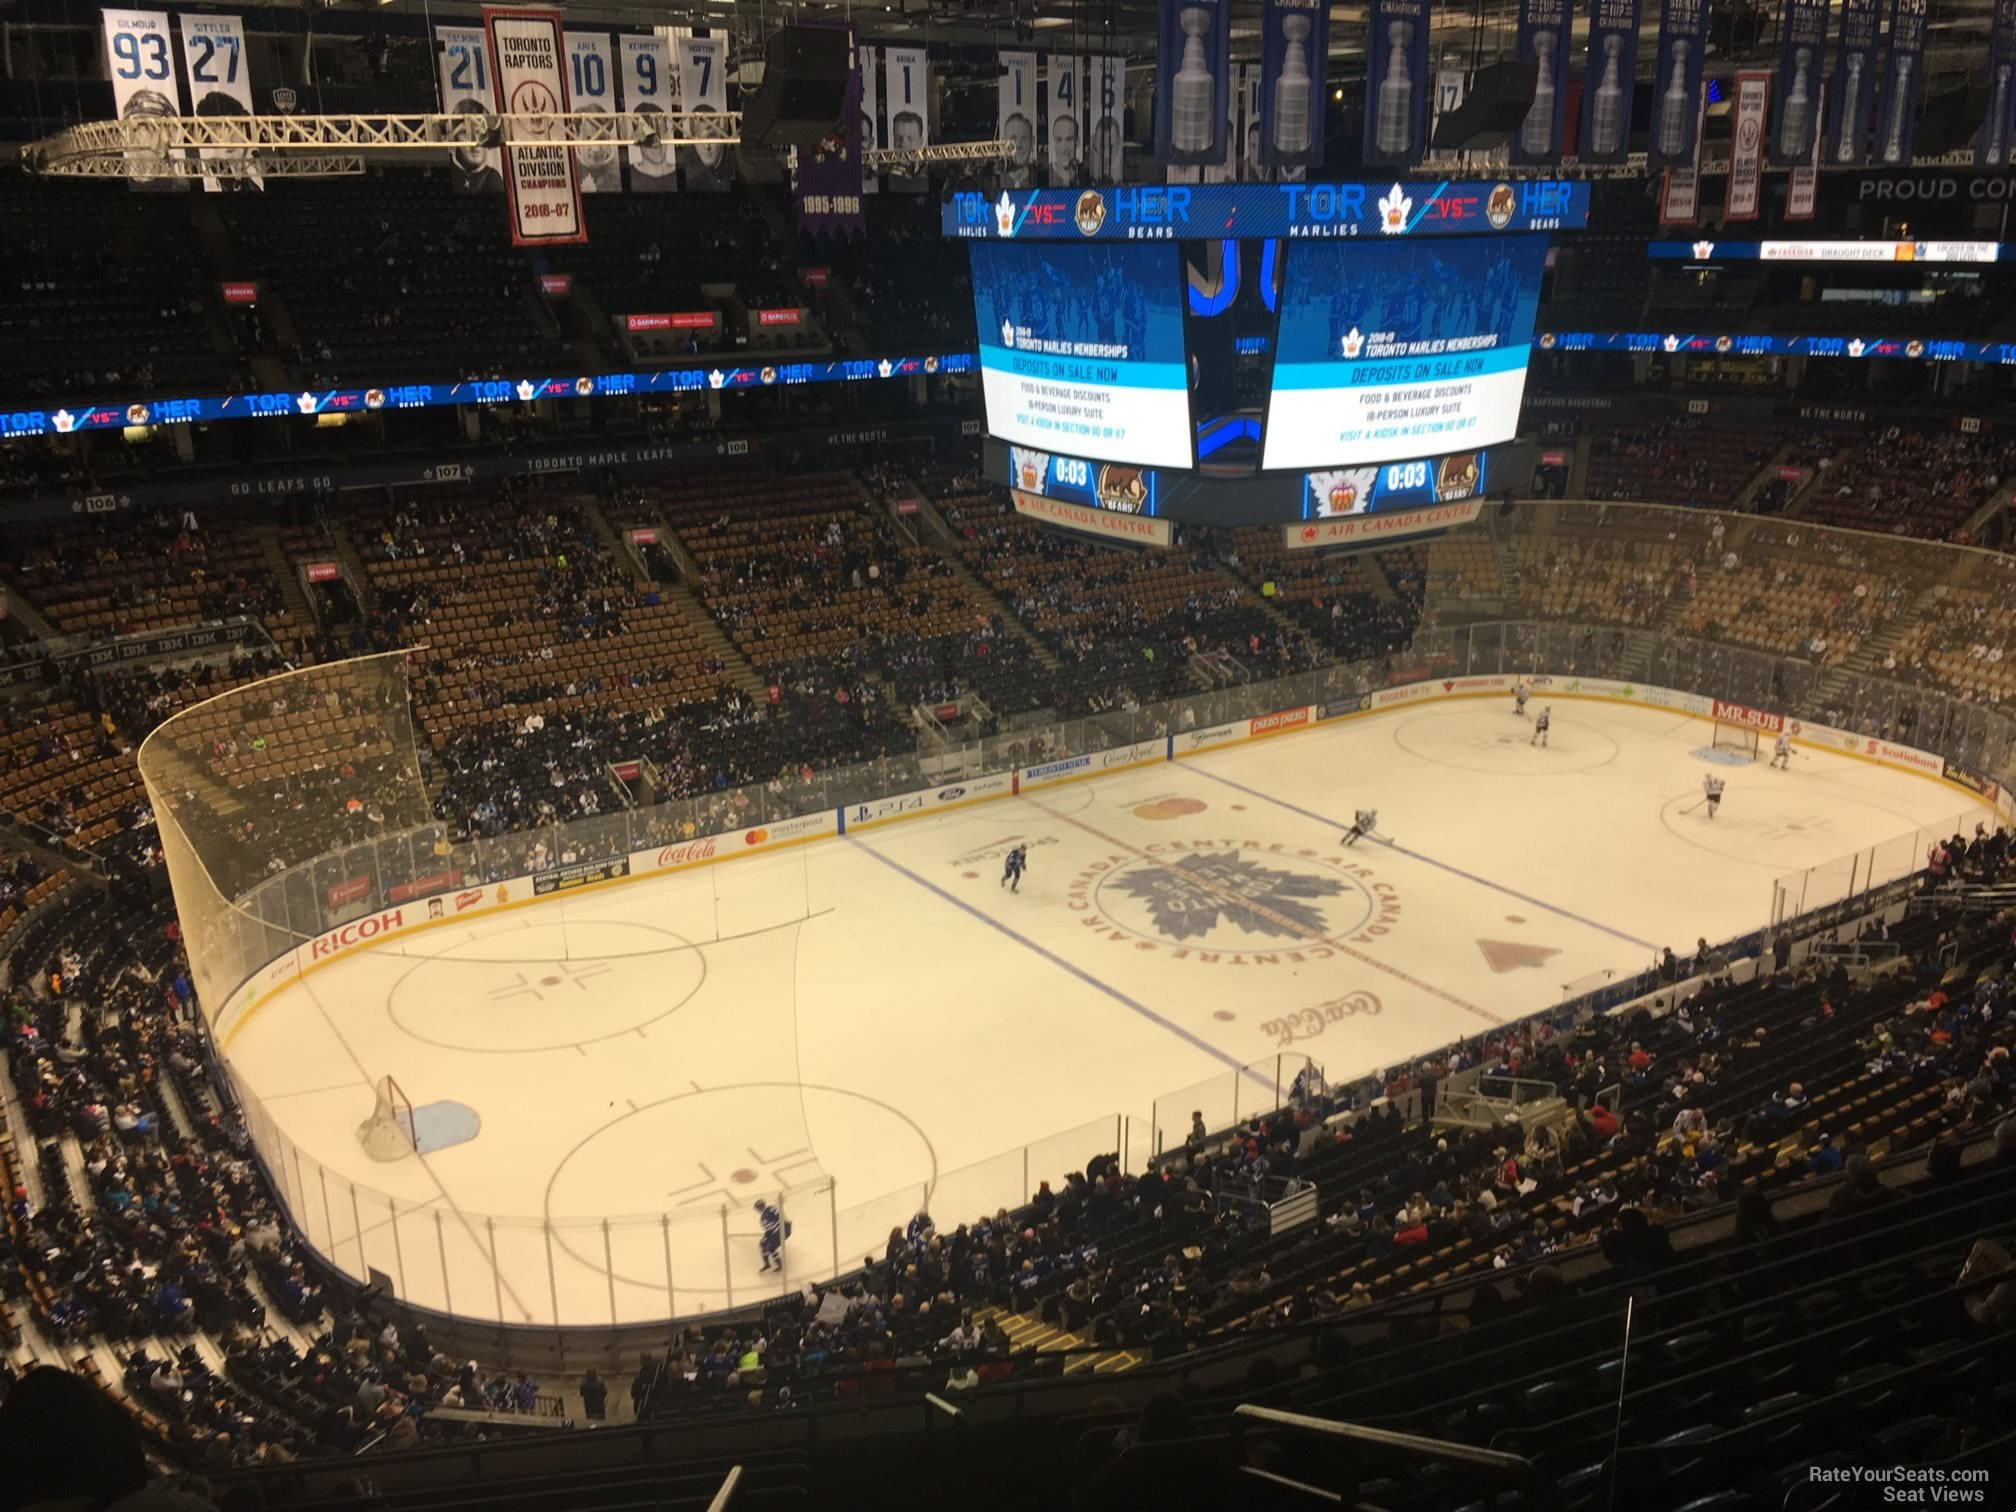 Toronto Maple Leafs Seat View for Scotiabank Arena Section 323, Row 10